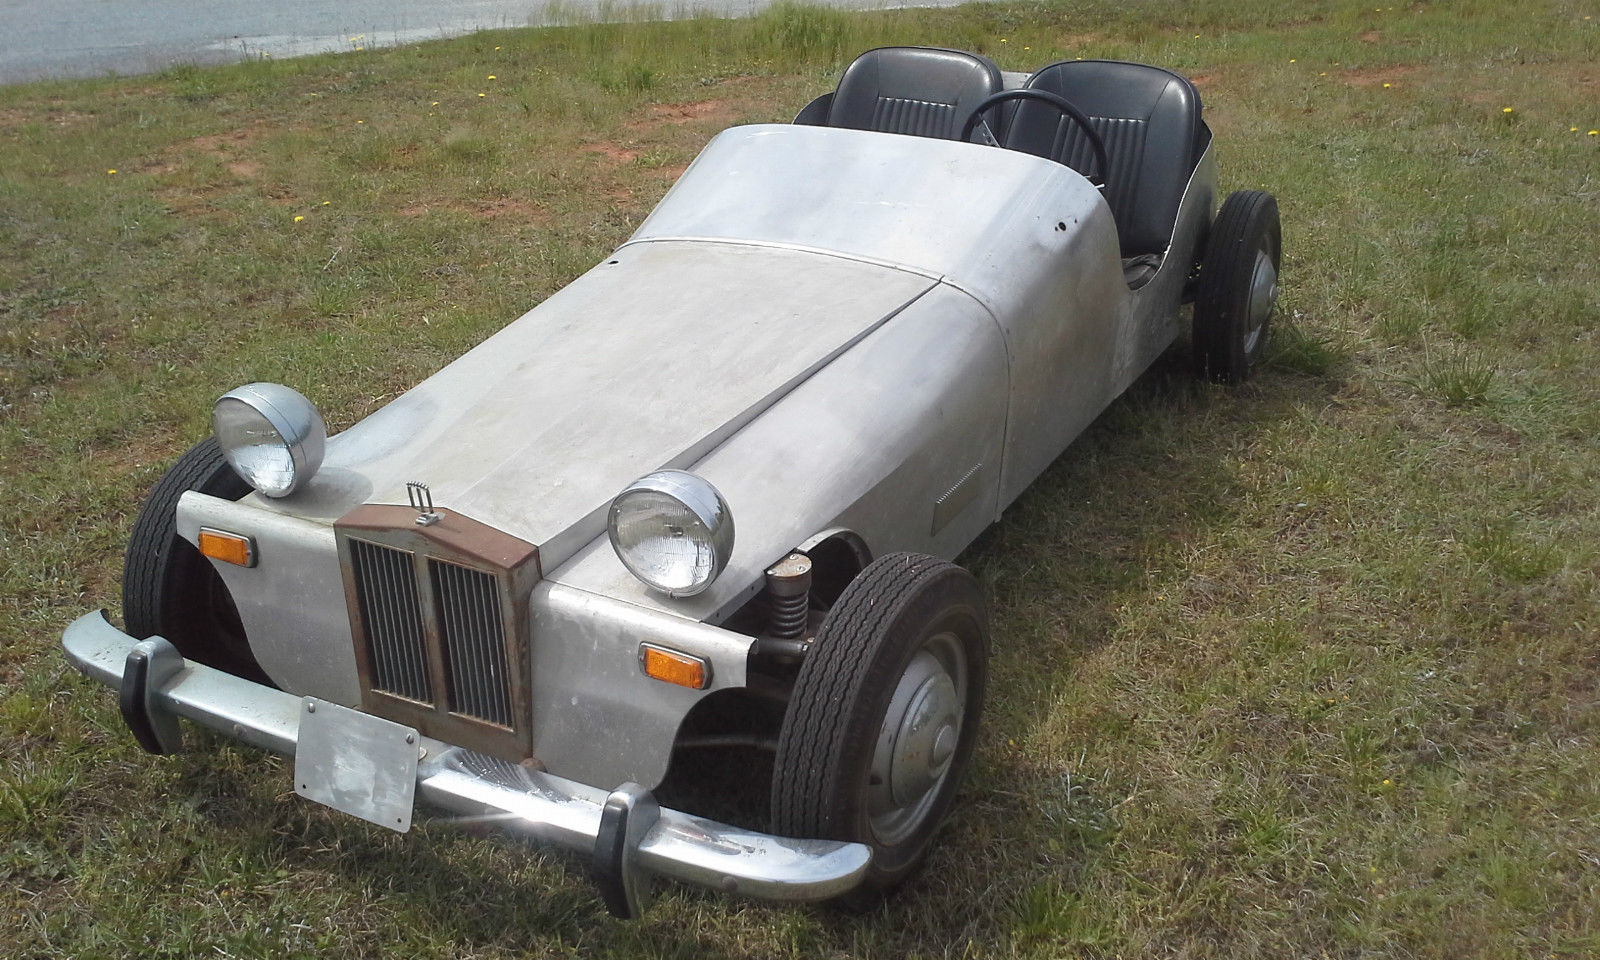 eBay Find: This Homebuilt, Cushman Powered Car Looks Like A Project Right Out Of The 1960s!